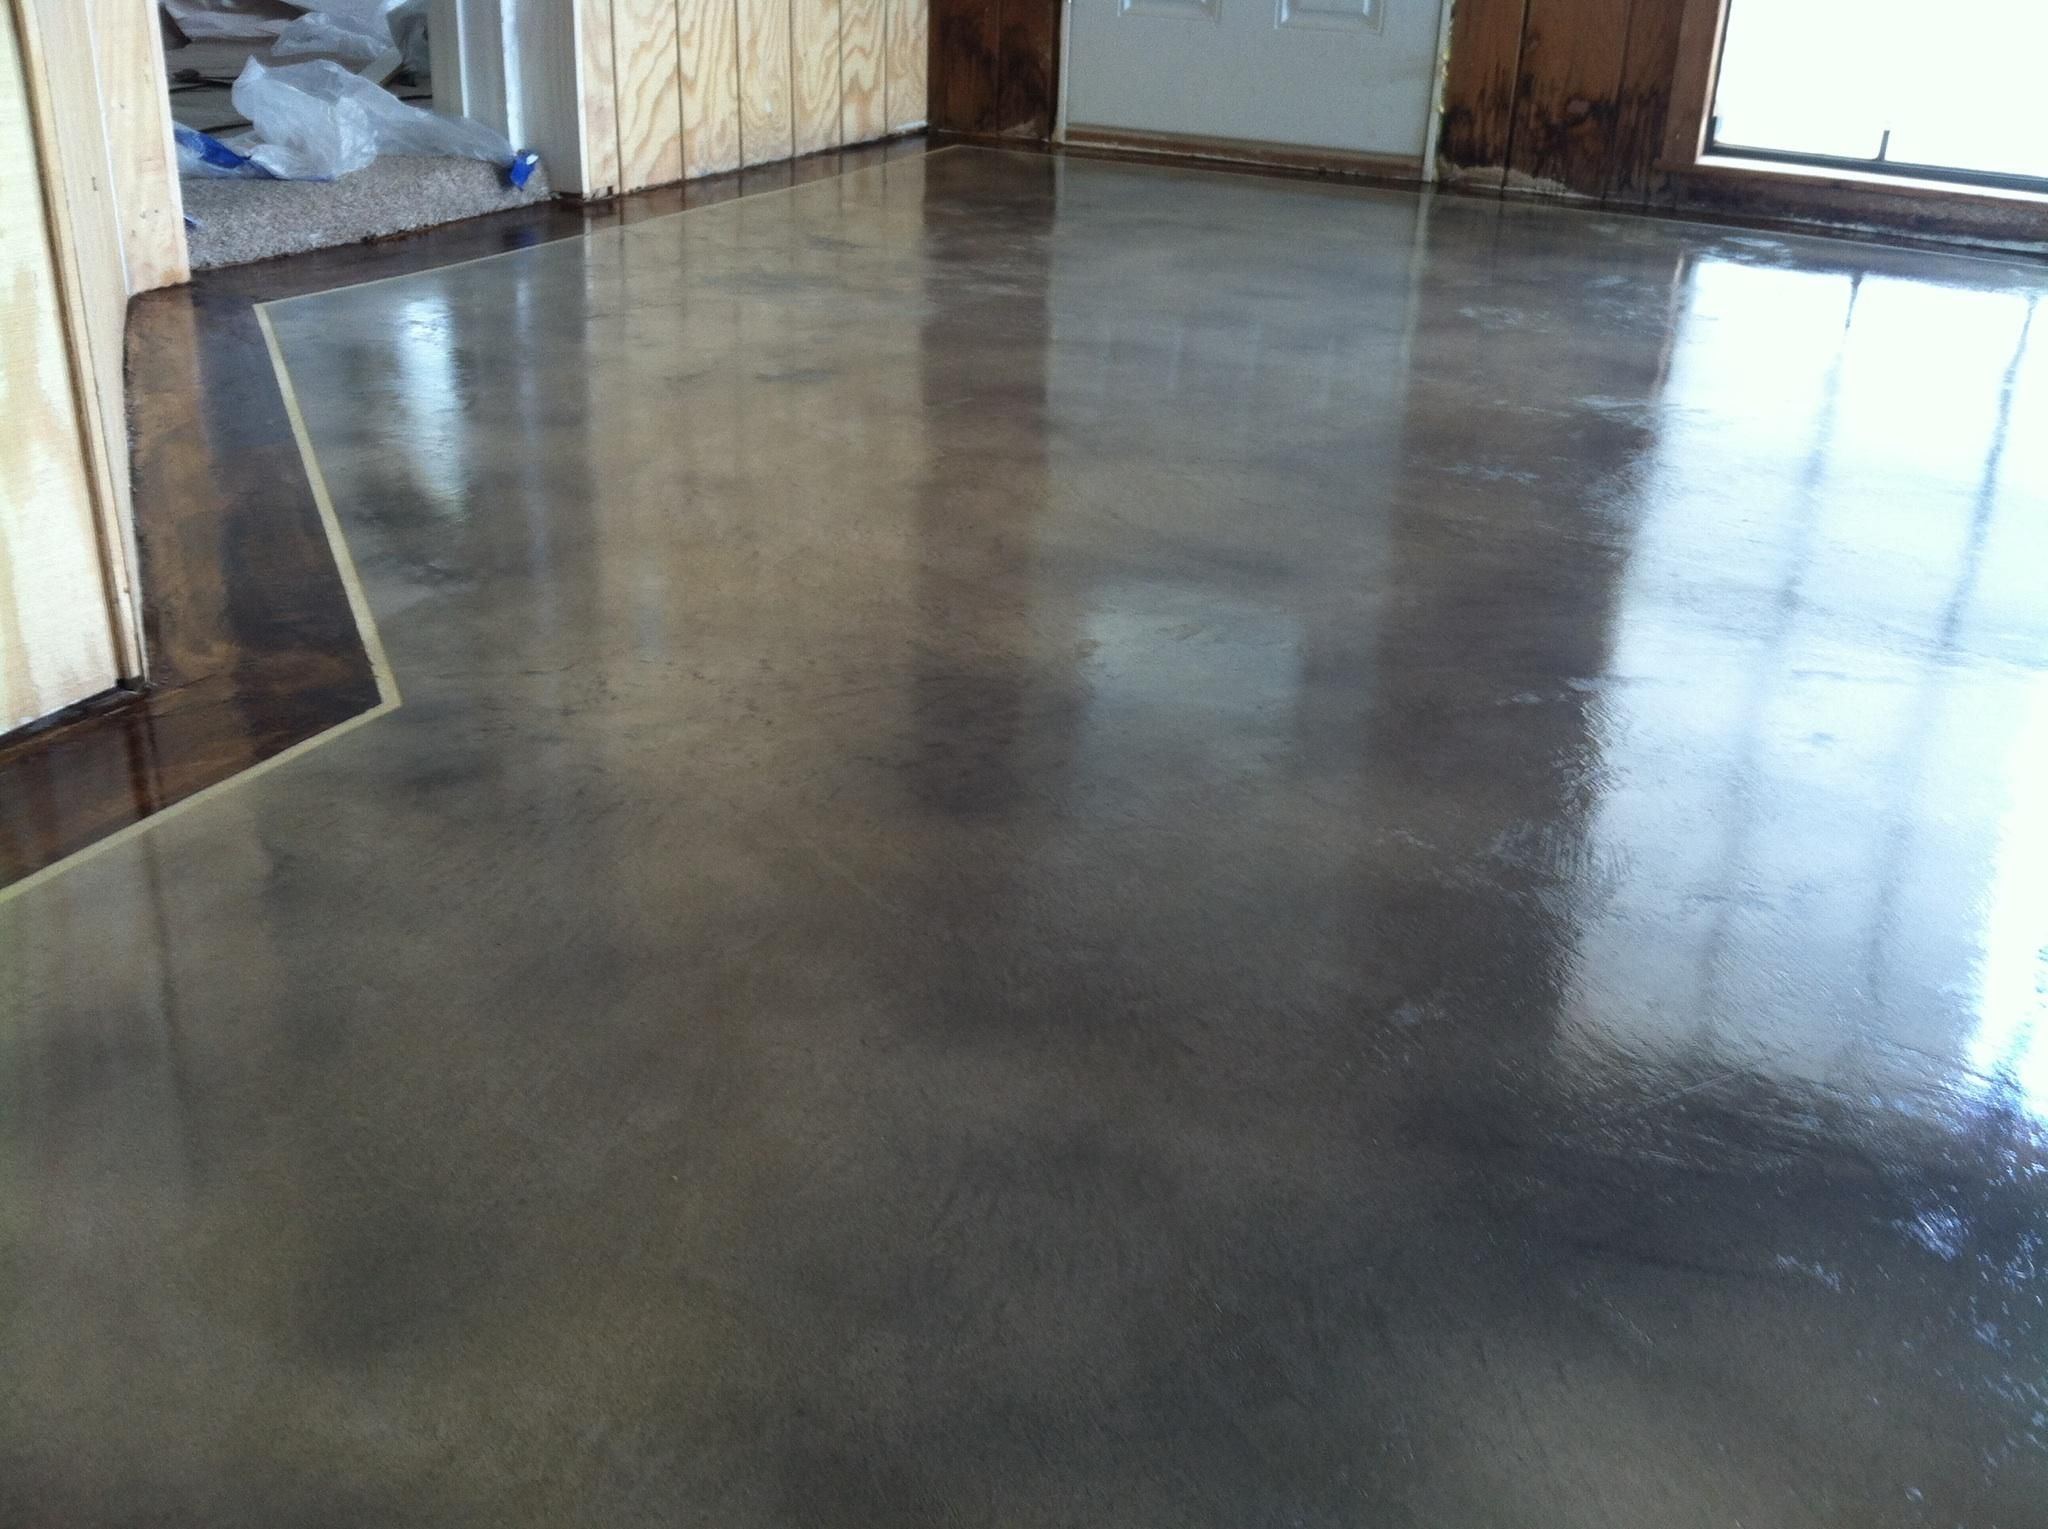 Interior Concrete Staining With Border By Solid Impressions. Abilene